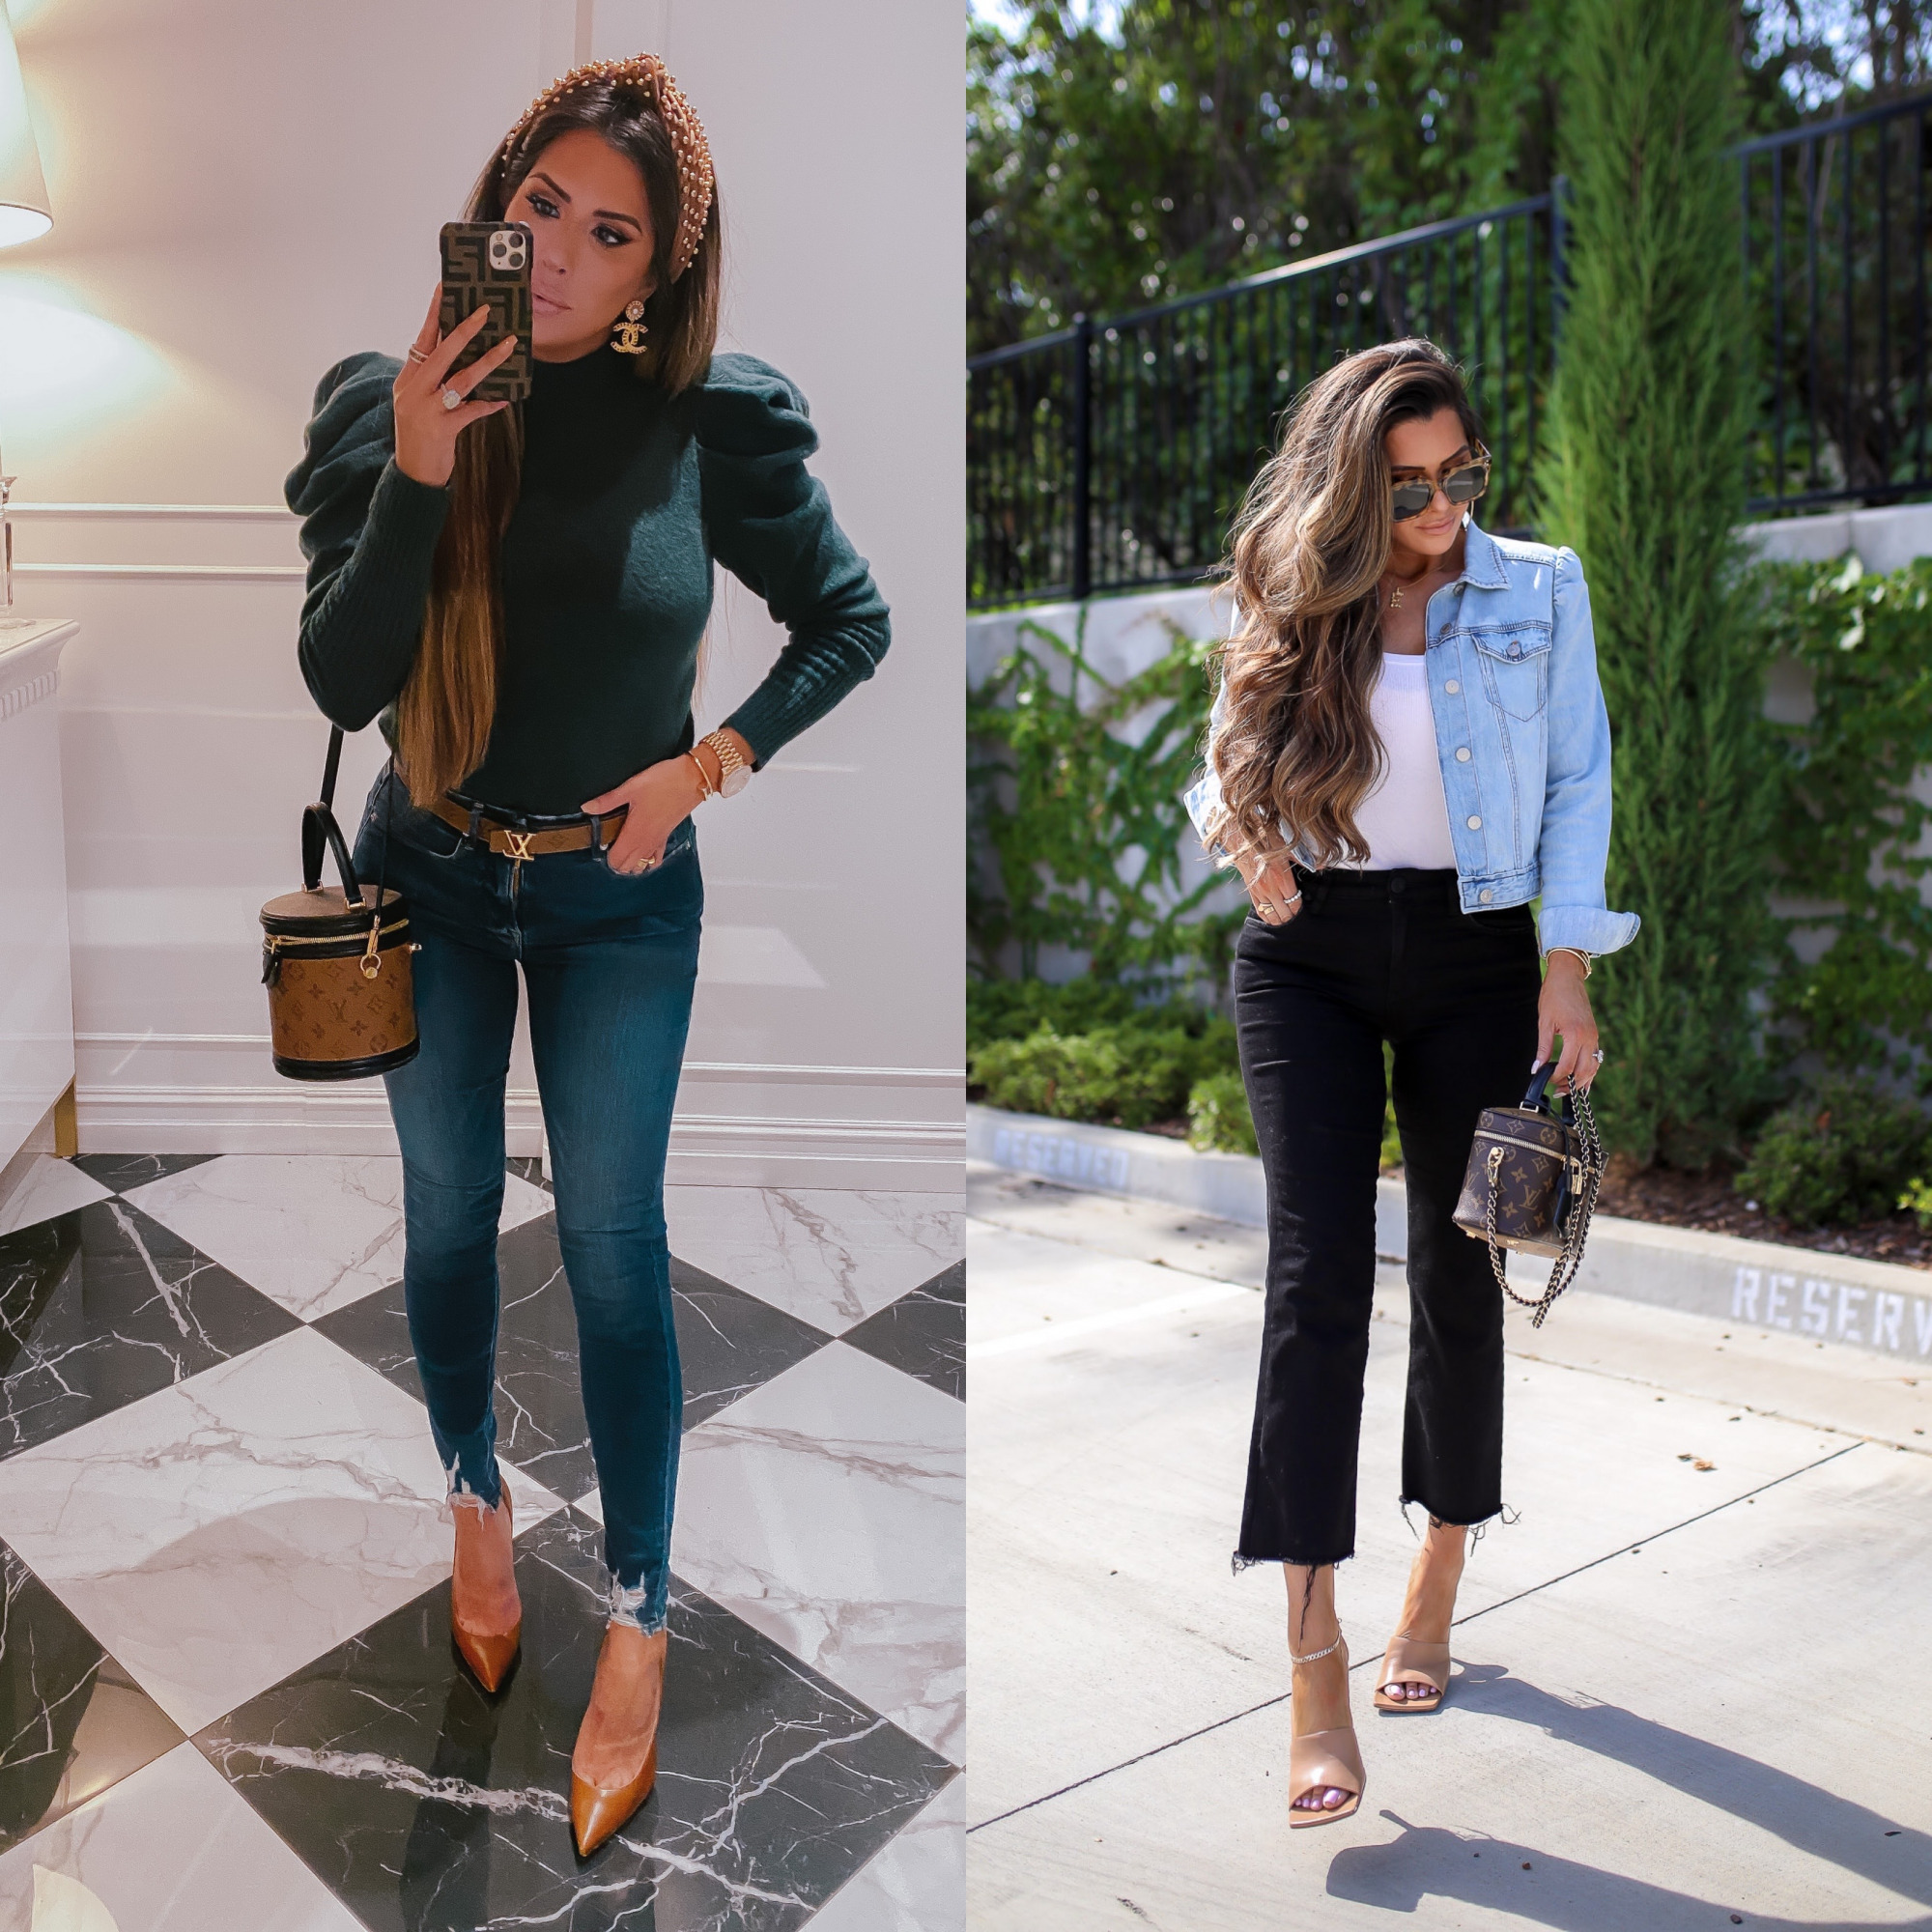 LTK day fall 2020, fall fashion outfit ideas pinterest 2020, emily ann gemma |  Sale Alert by popular US fashion blog, The Sweetest Thing: collage image of Emily Gemma wearing Express clothing.